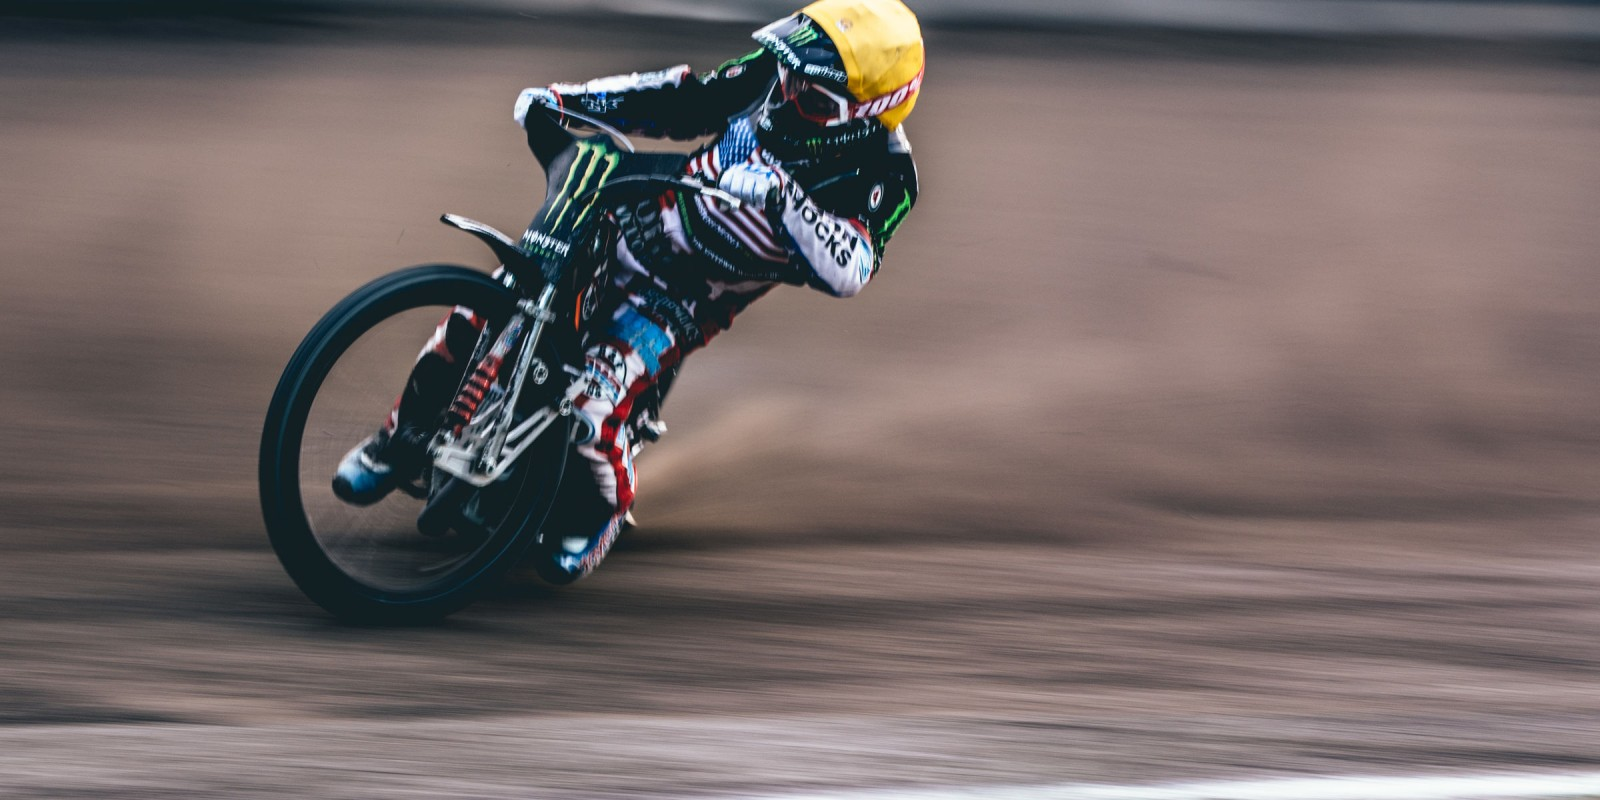 Images from the 2017 Monster Energy Speedway World Cup Race Off